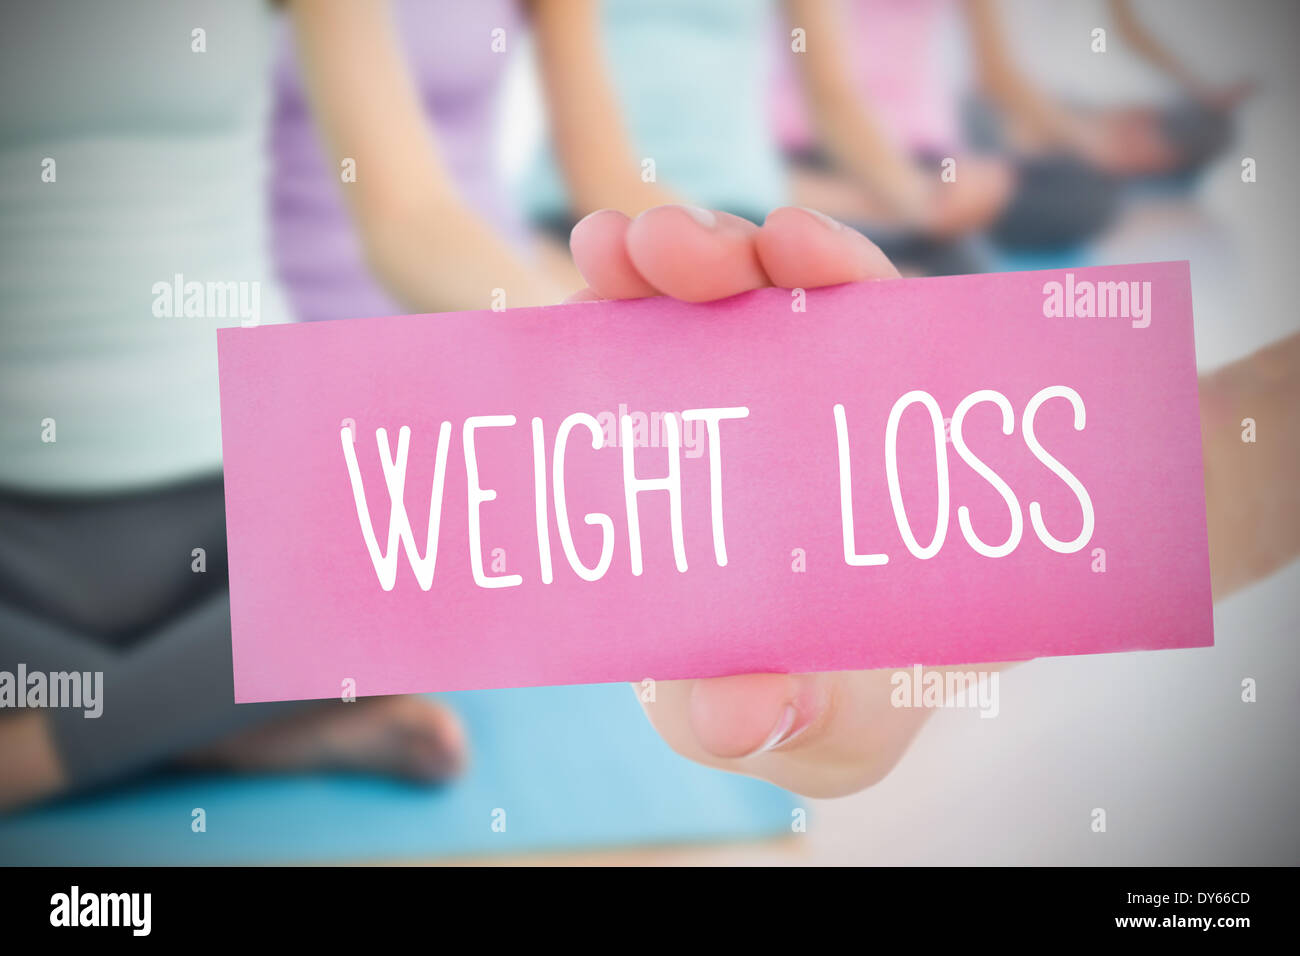 Woman holding pink card saying weight loss - Stock Image